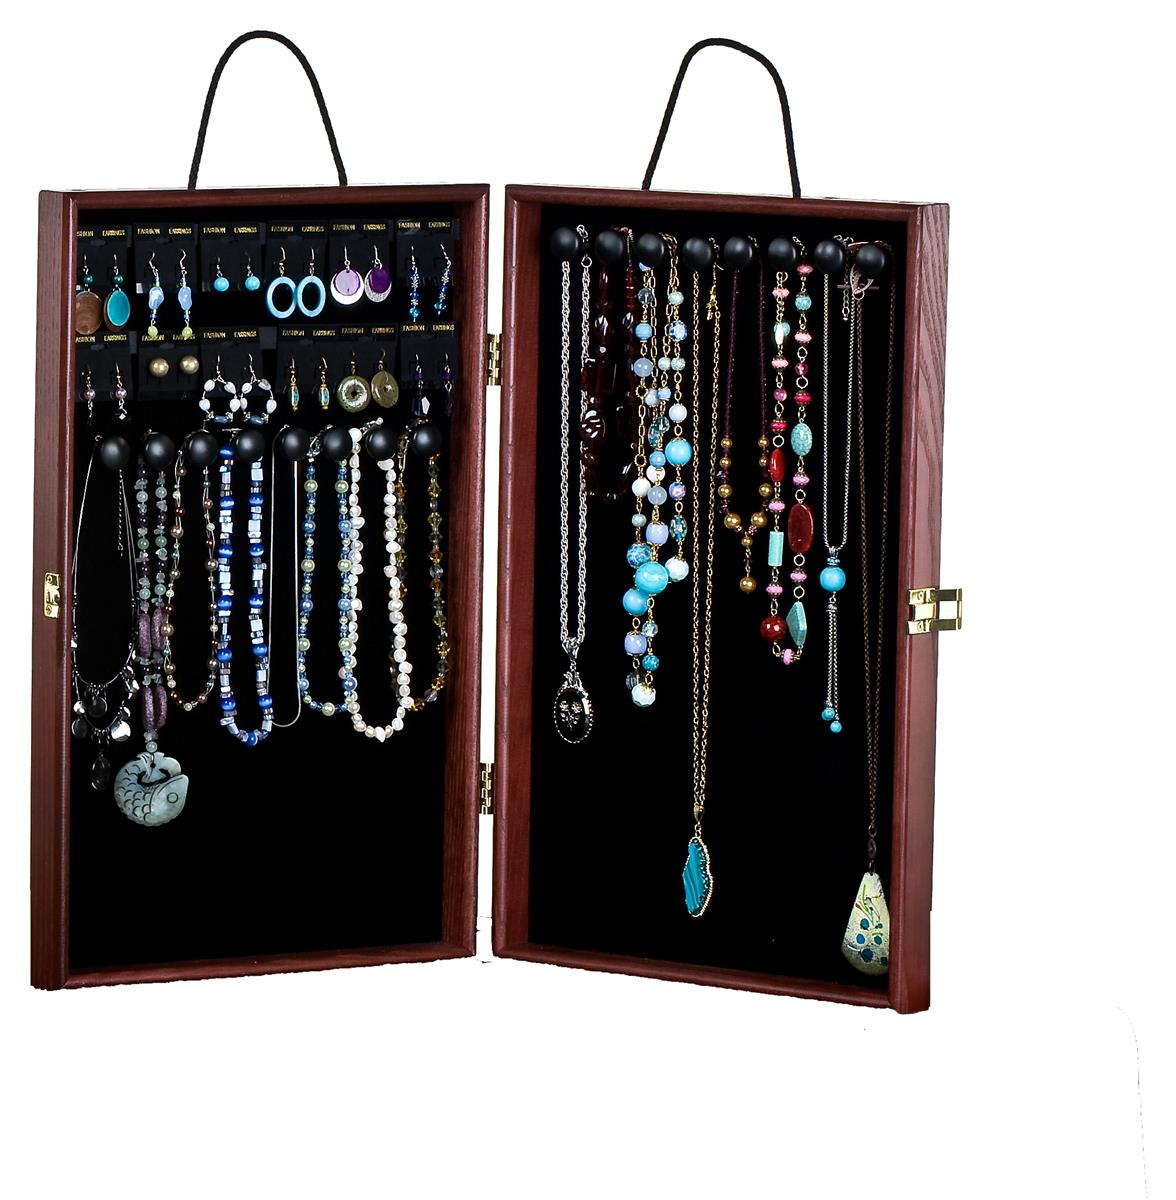 Portable Jewelry Display Case Is For Trade Shows Craft Fairs And Home Parties This Unit Holds